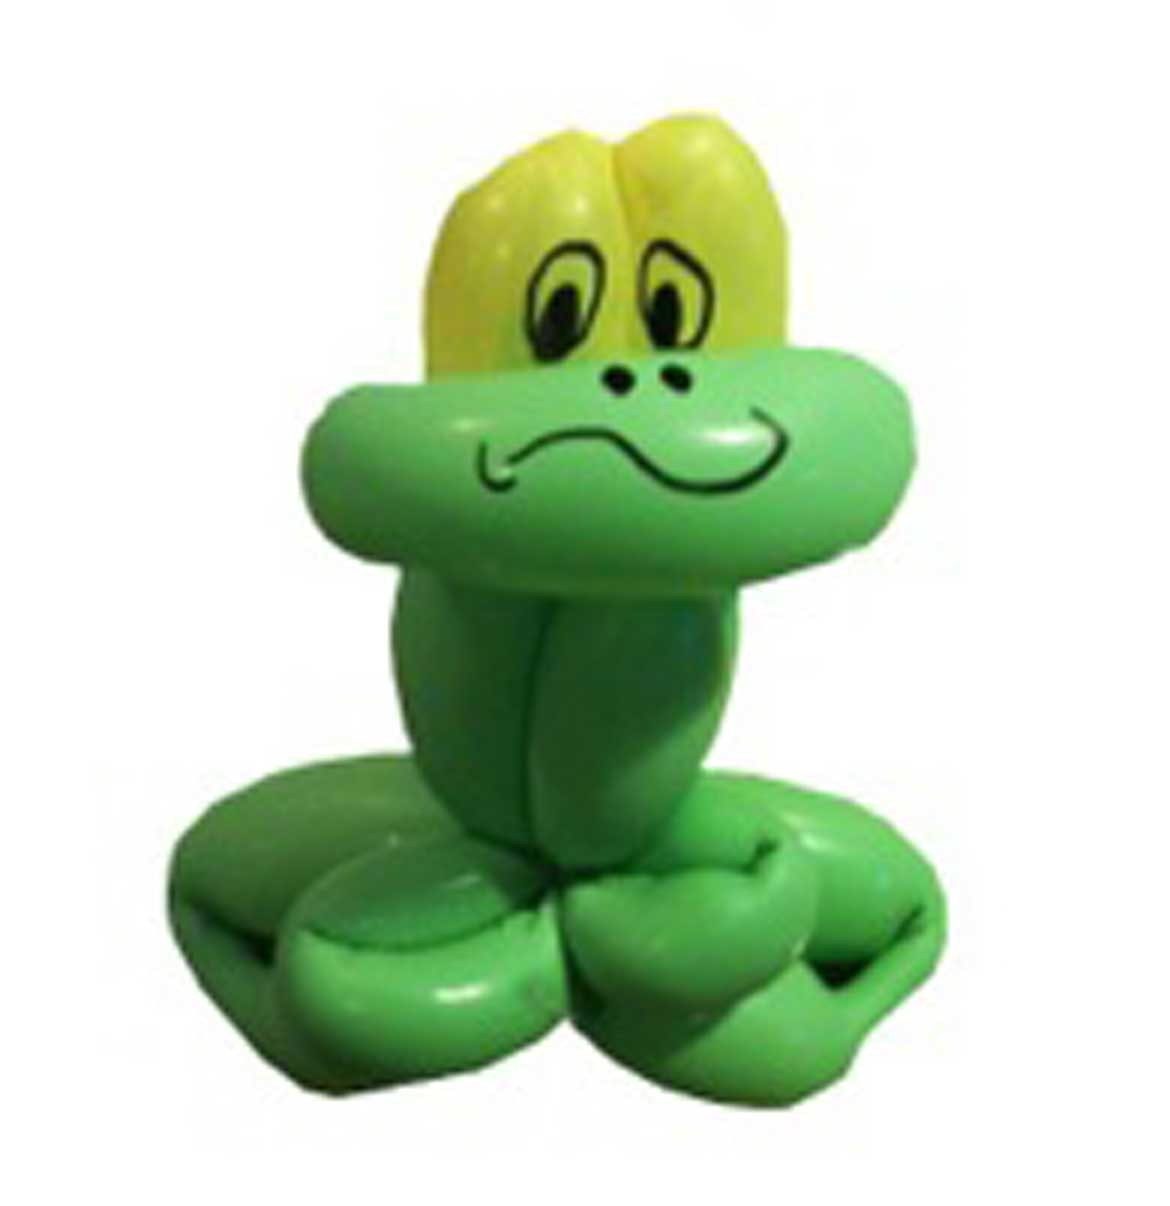 Frog made out of two balloons